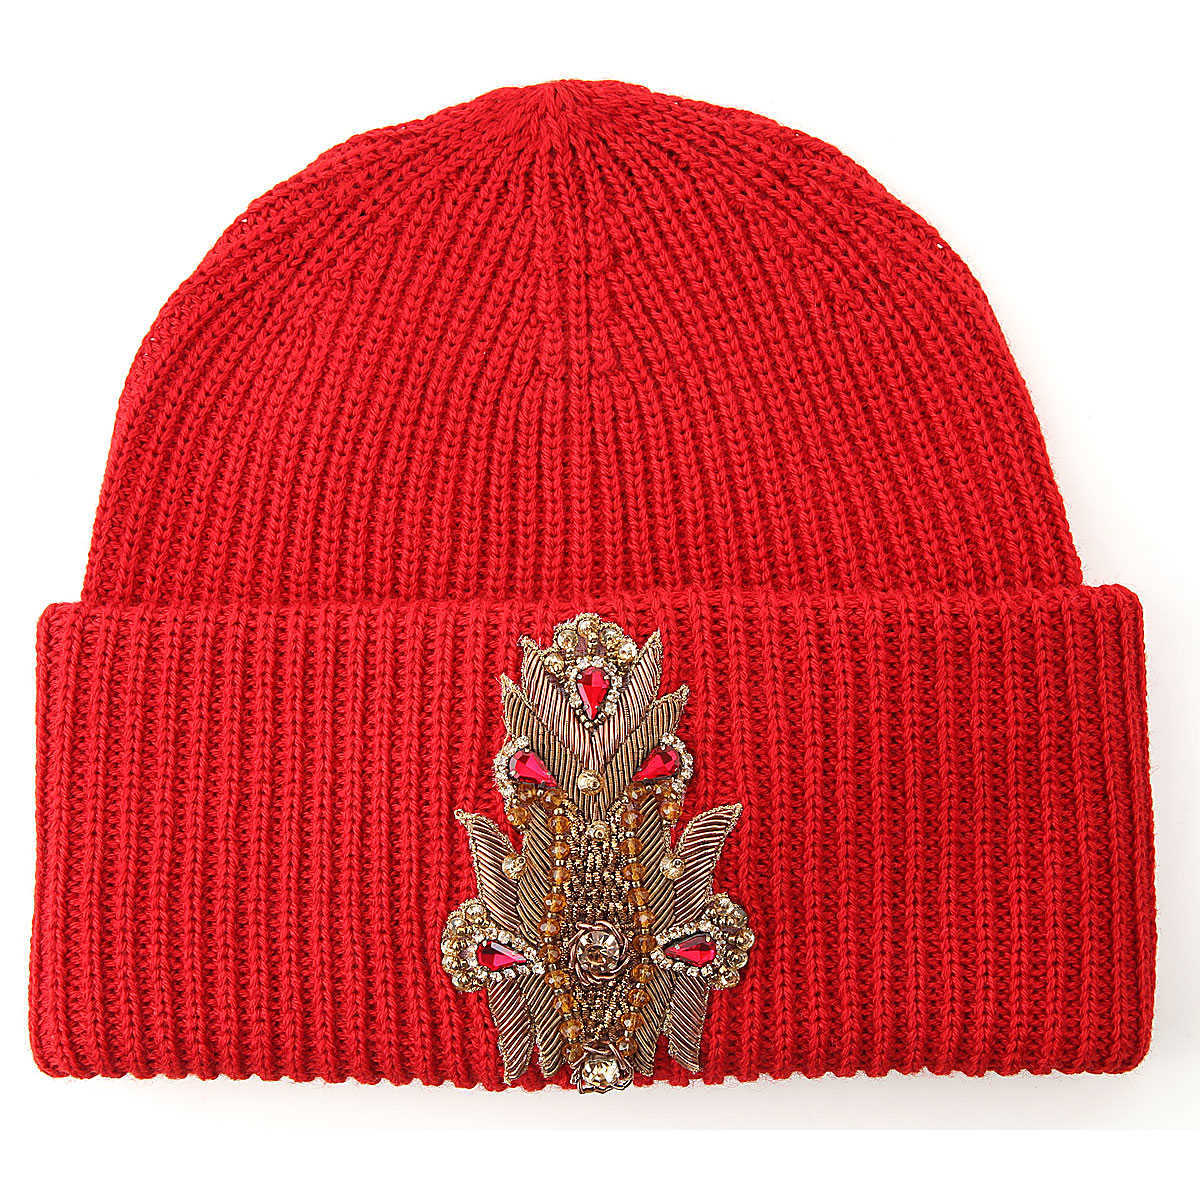 Dondup Hat for Women Red DK - GOOFASH - Womens HATS